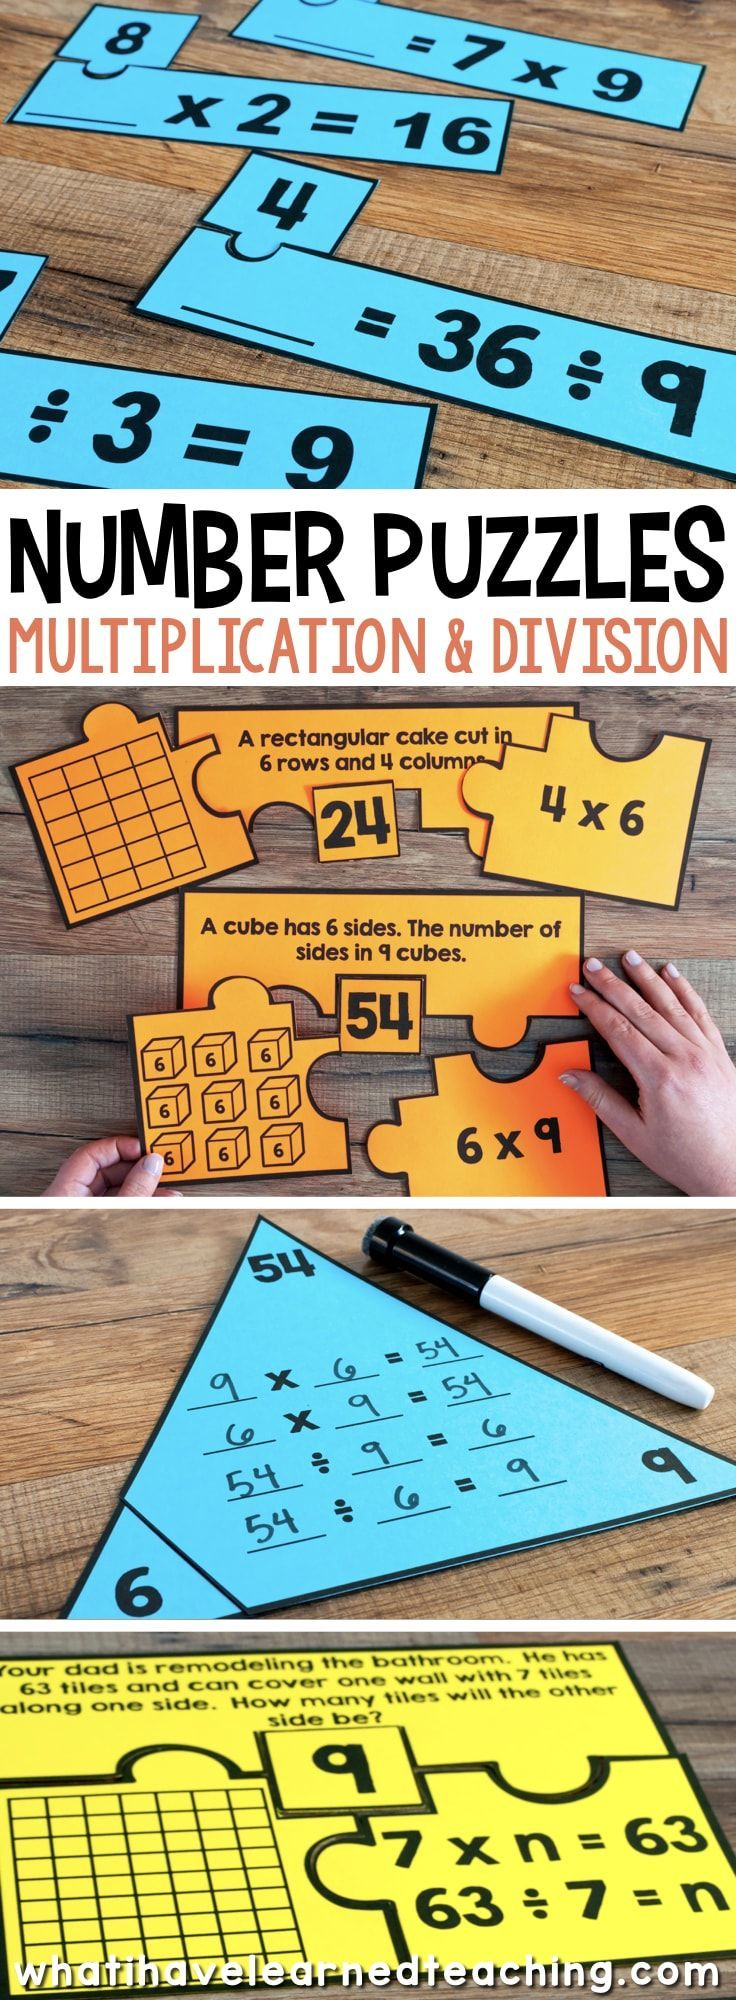 math numbers and operations Numbers, operations,  by the end of this quiz you should be able to represent words with numbers and also perform a variety of  7th grade math : share related.